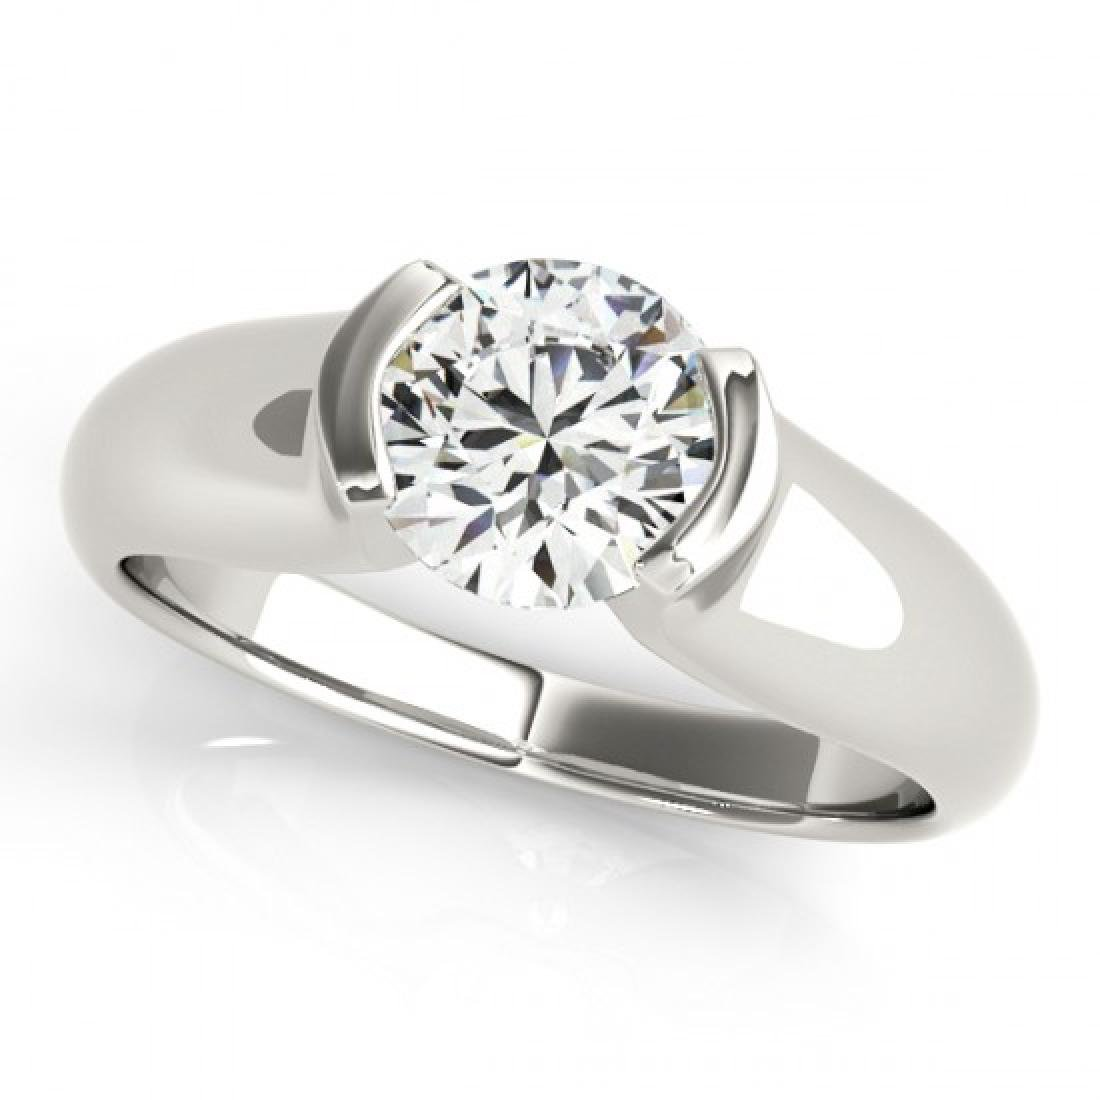 0.5 CTW Certified VS/SI Diamond Solitaire Ring 14K - 2